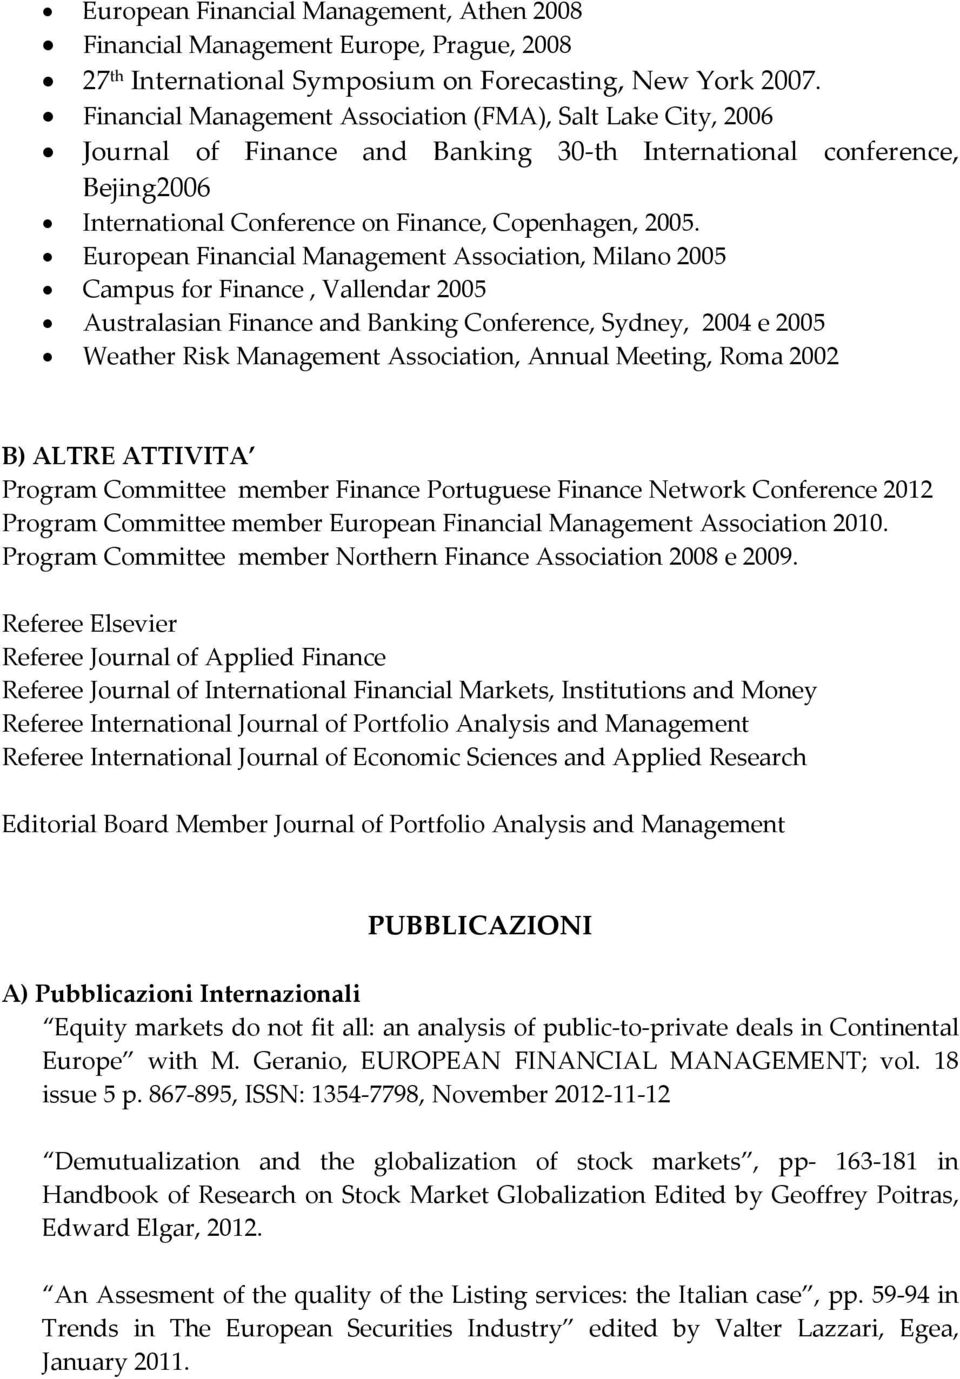 European Financial Management Association, Milano 2005 Campus for Finance, Vallendar 2005 Australasian Finance and Banking Conference, Sydney, 2004 e 2005 Weather Risk Management Association, Annual